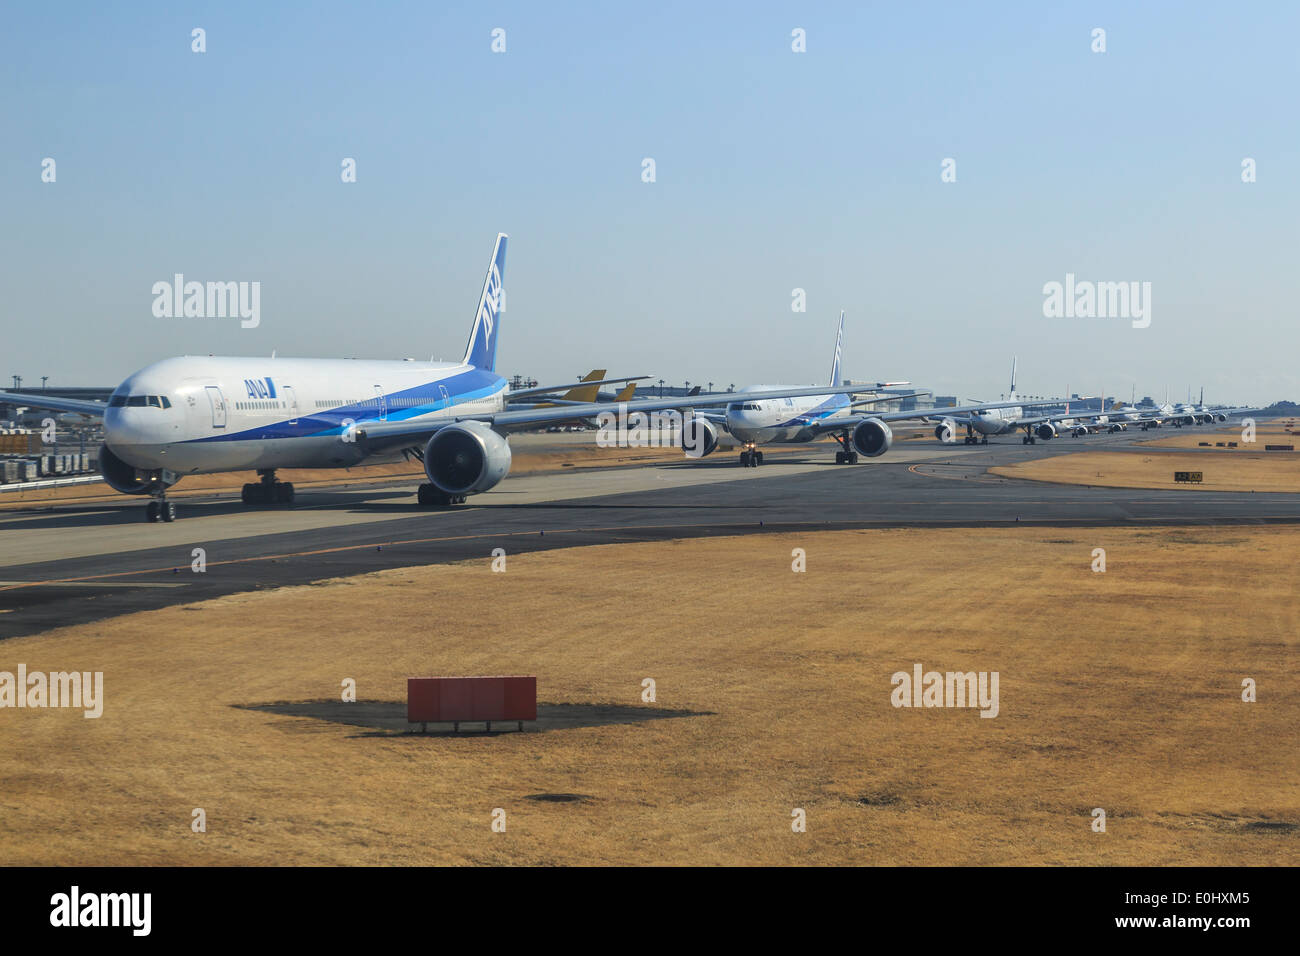 Airplanes waiting to depart - Stock Image